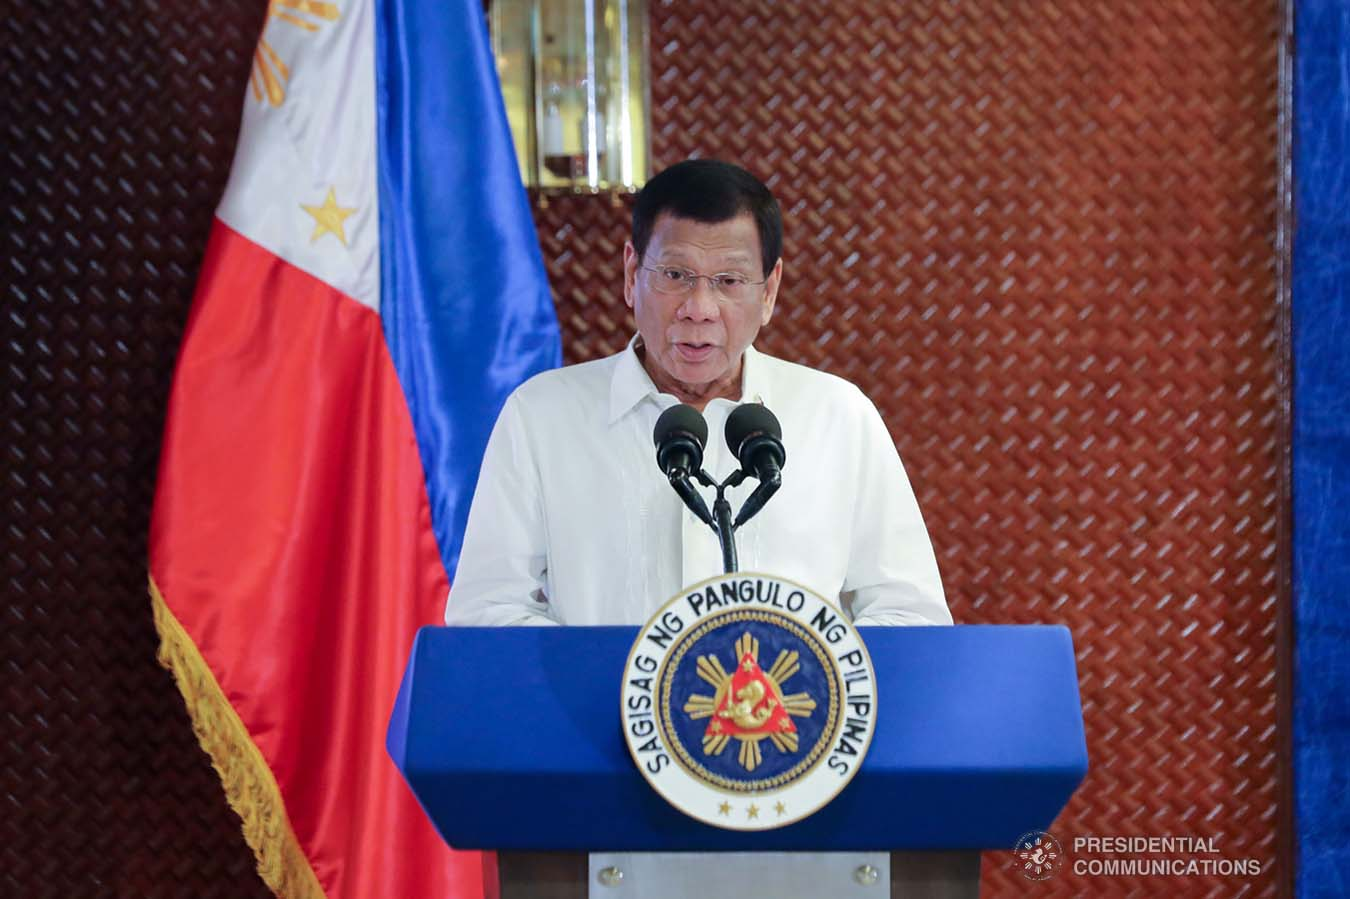 President Rodrigo Roa Duterte delivers his speech after leading the awarding ceremony for the 2019 Model Overseas Filipino Worker (OFW) Family of the Year Award (MOFYA) at the Malacañan Palace on November 28, 2019. VALERIE ESCALERA/PRESIDENTIAL PHOTO